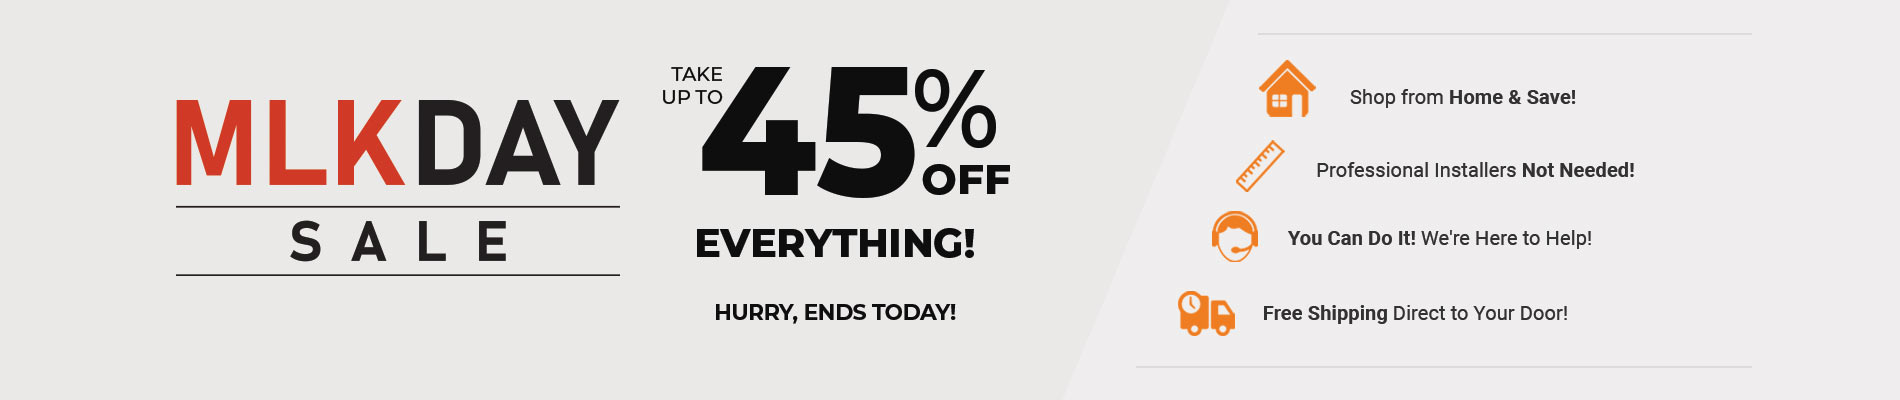 Save Up To 45% on Everything